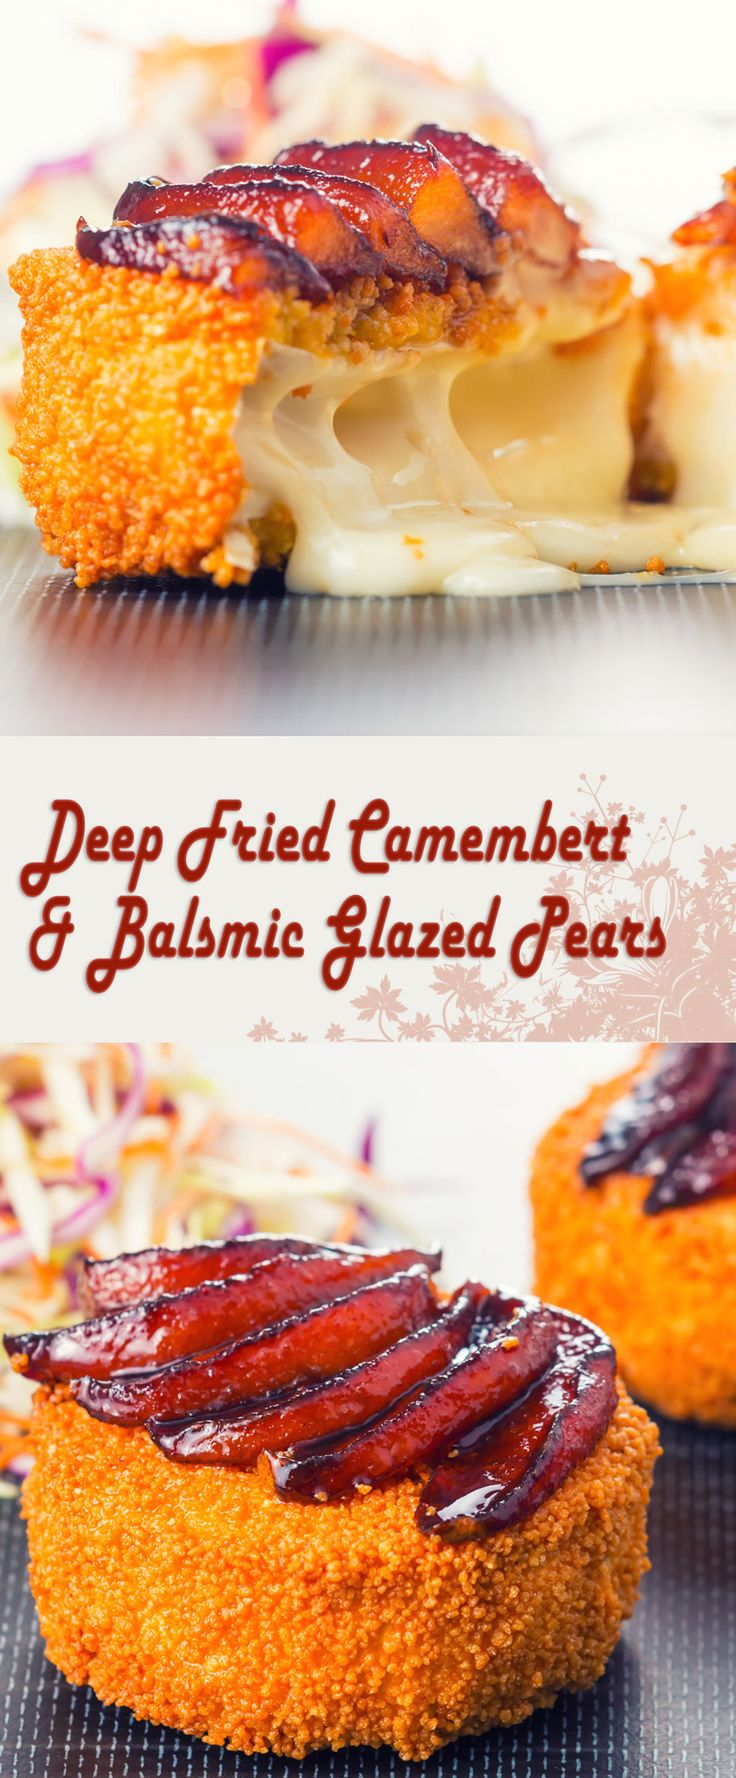 Deep Fried Camambert & Balsamic Glazed Pears Recipe: The crispy cous cous topping makes this deep fried Camembert really stand out from the crowd and matches perfectly with the balsamic glazed pears!